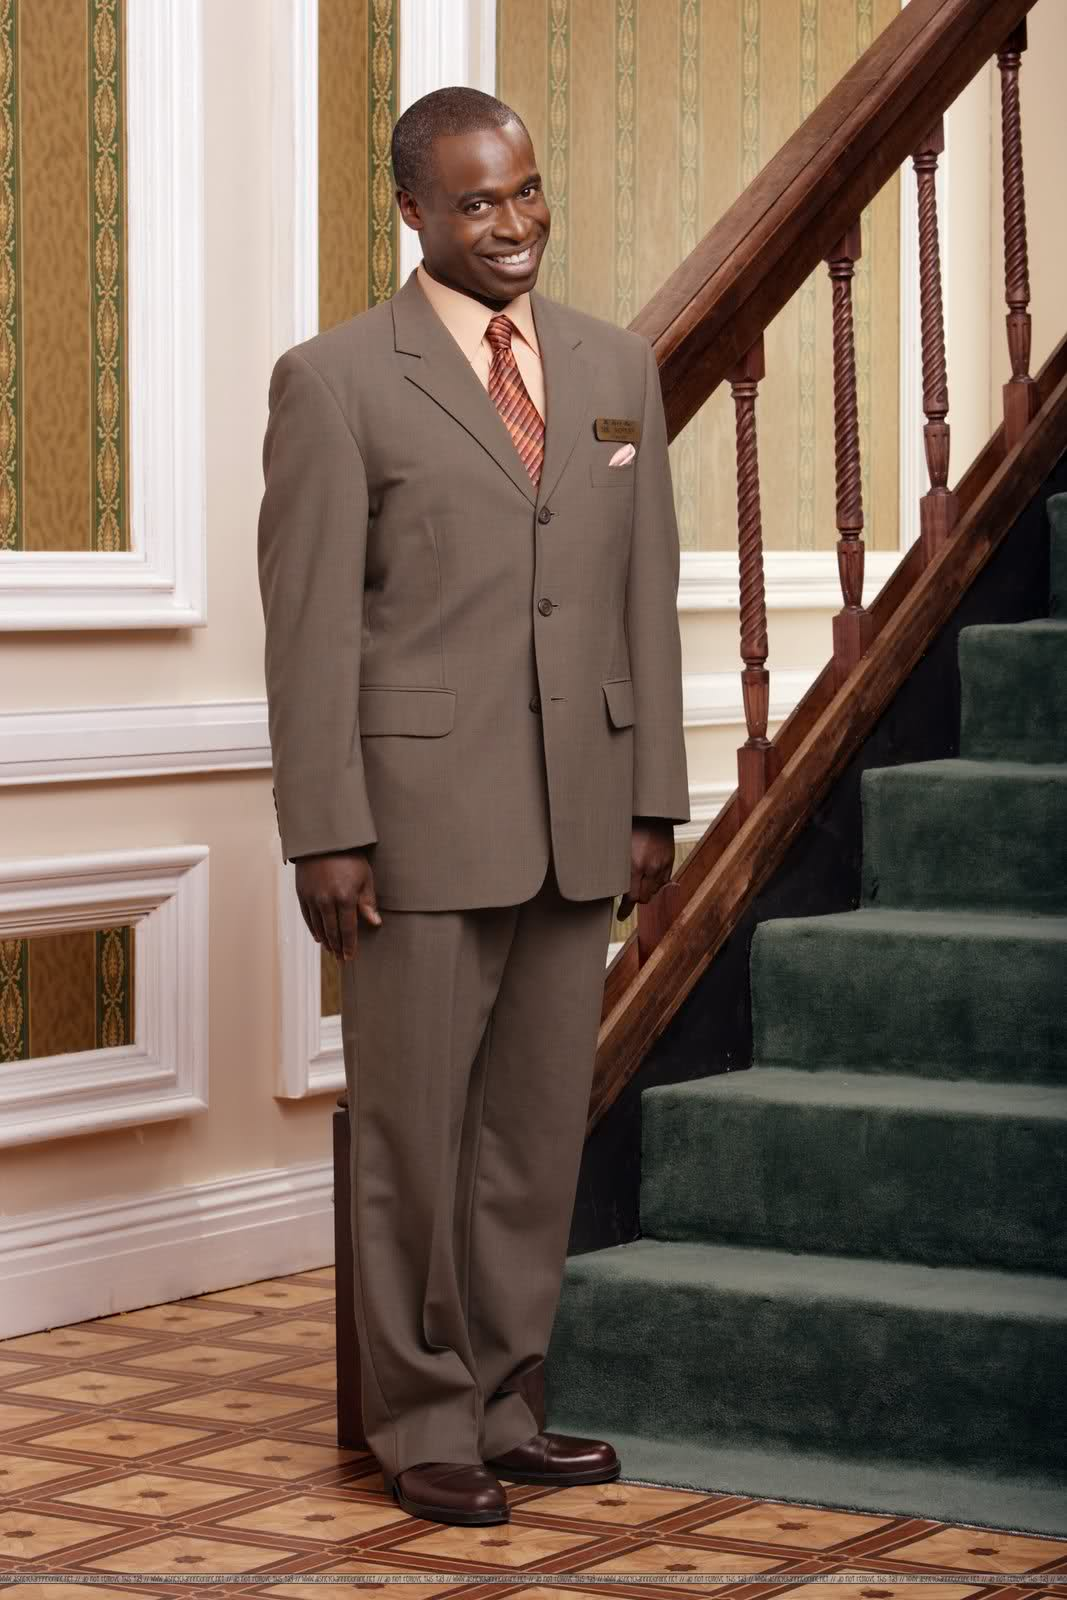 Moseby SL